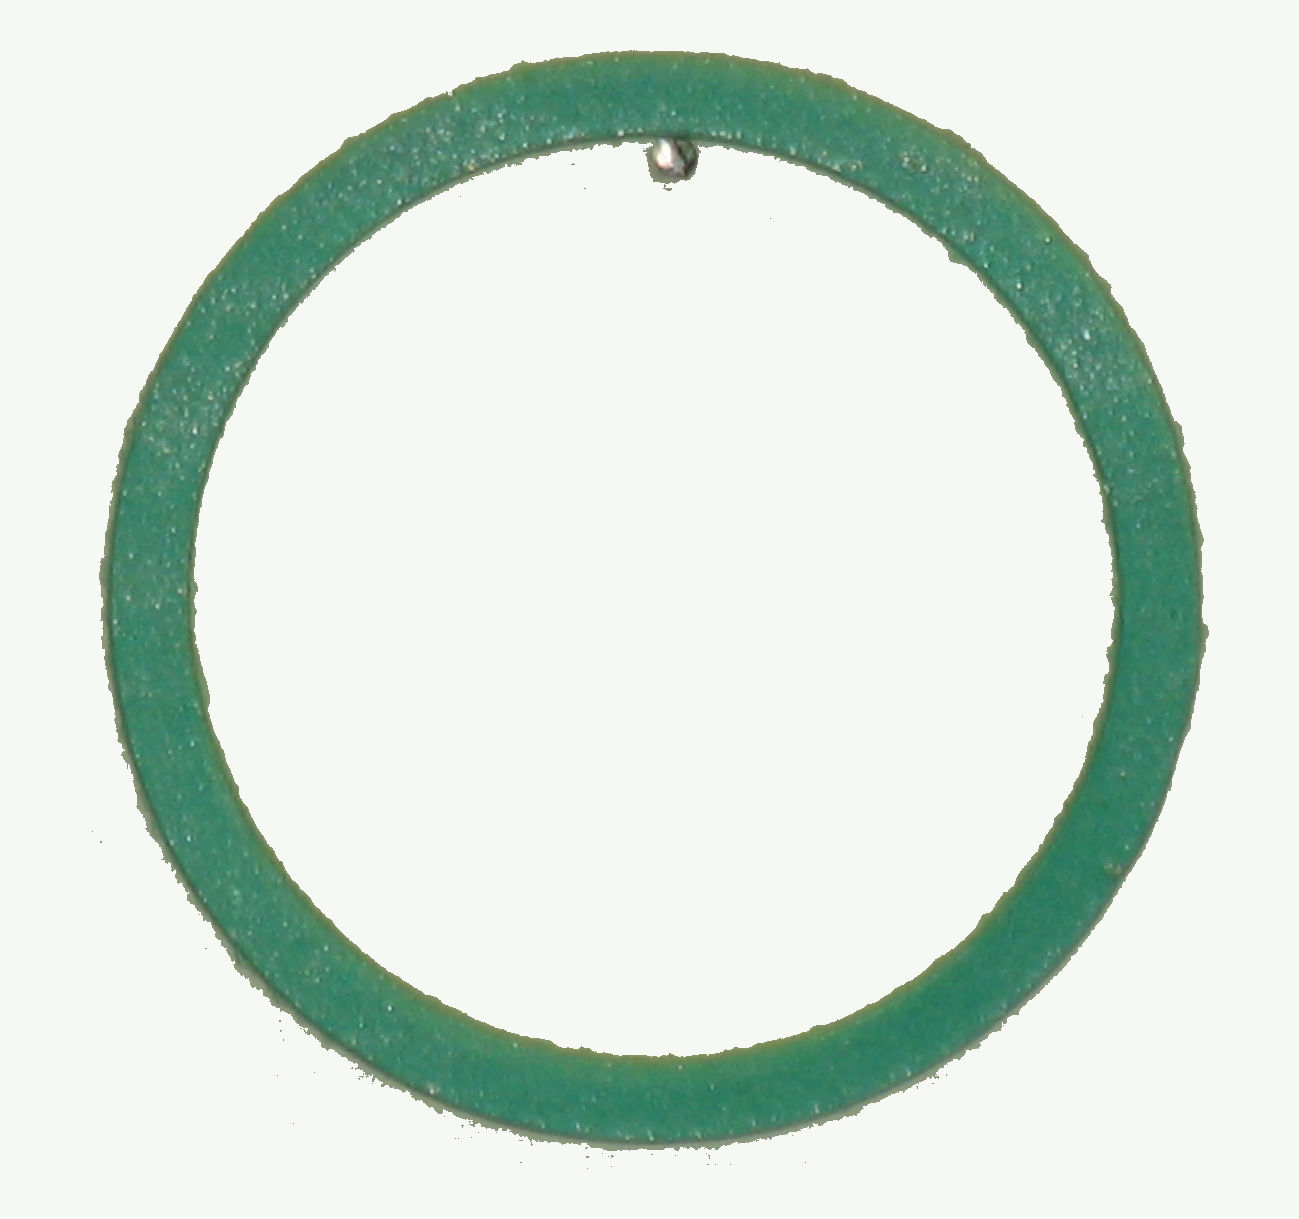 GKT-6366 Gasket R/N GKT-14 (Made in the USA)